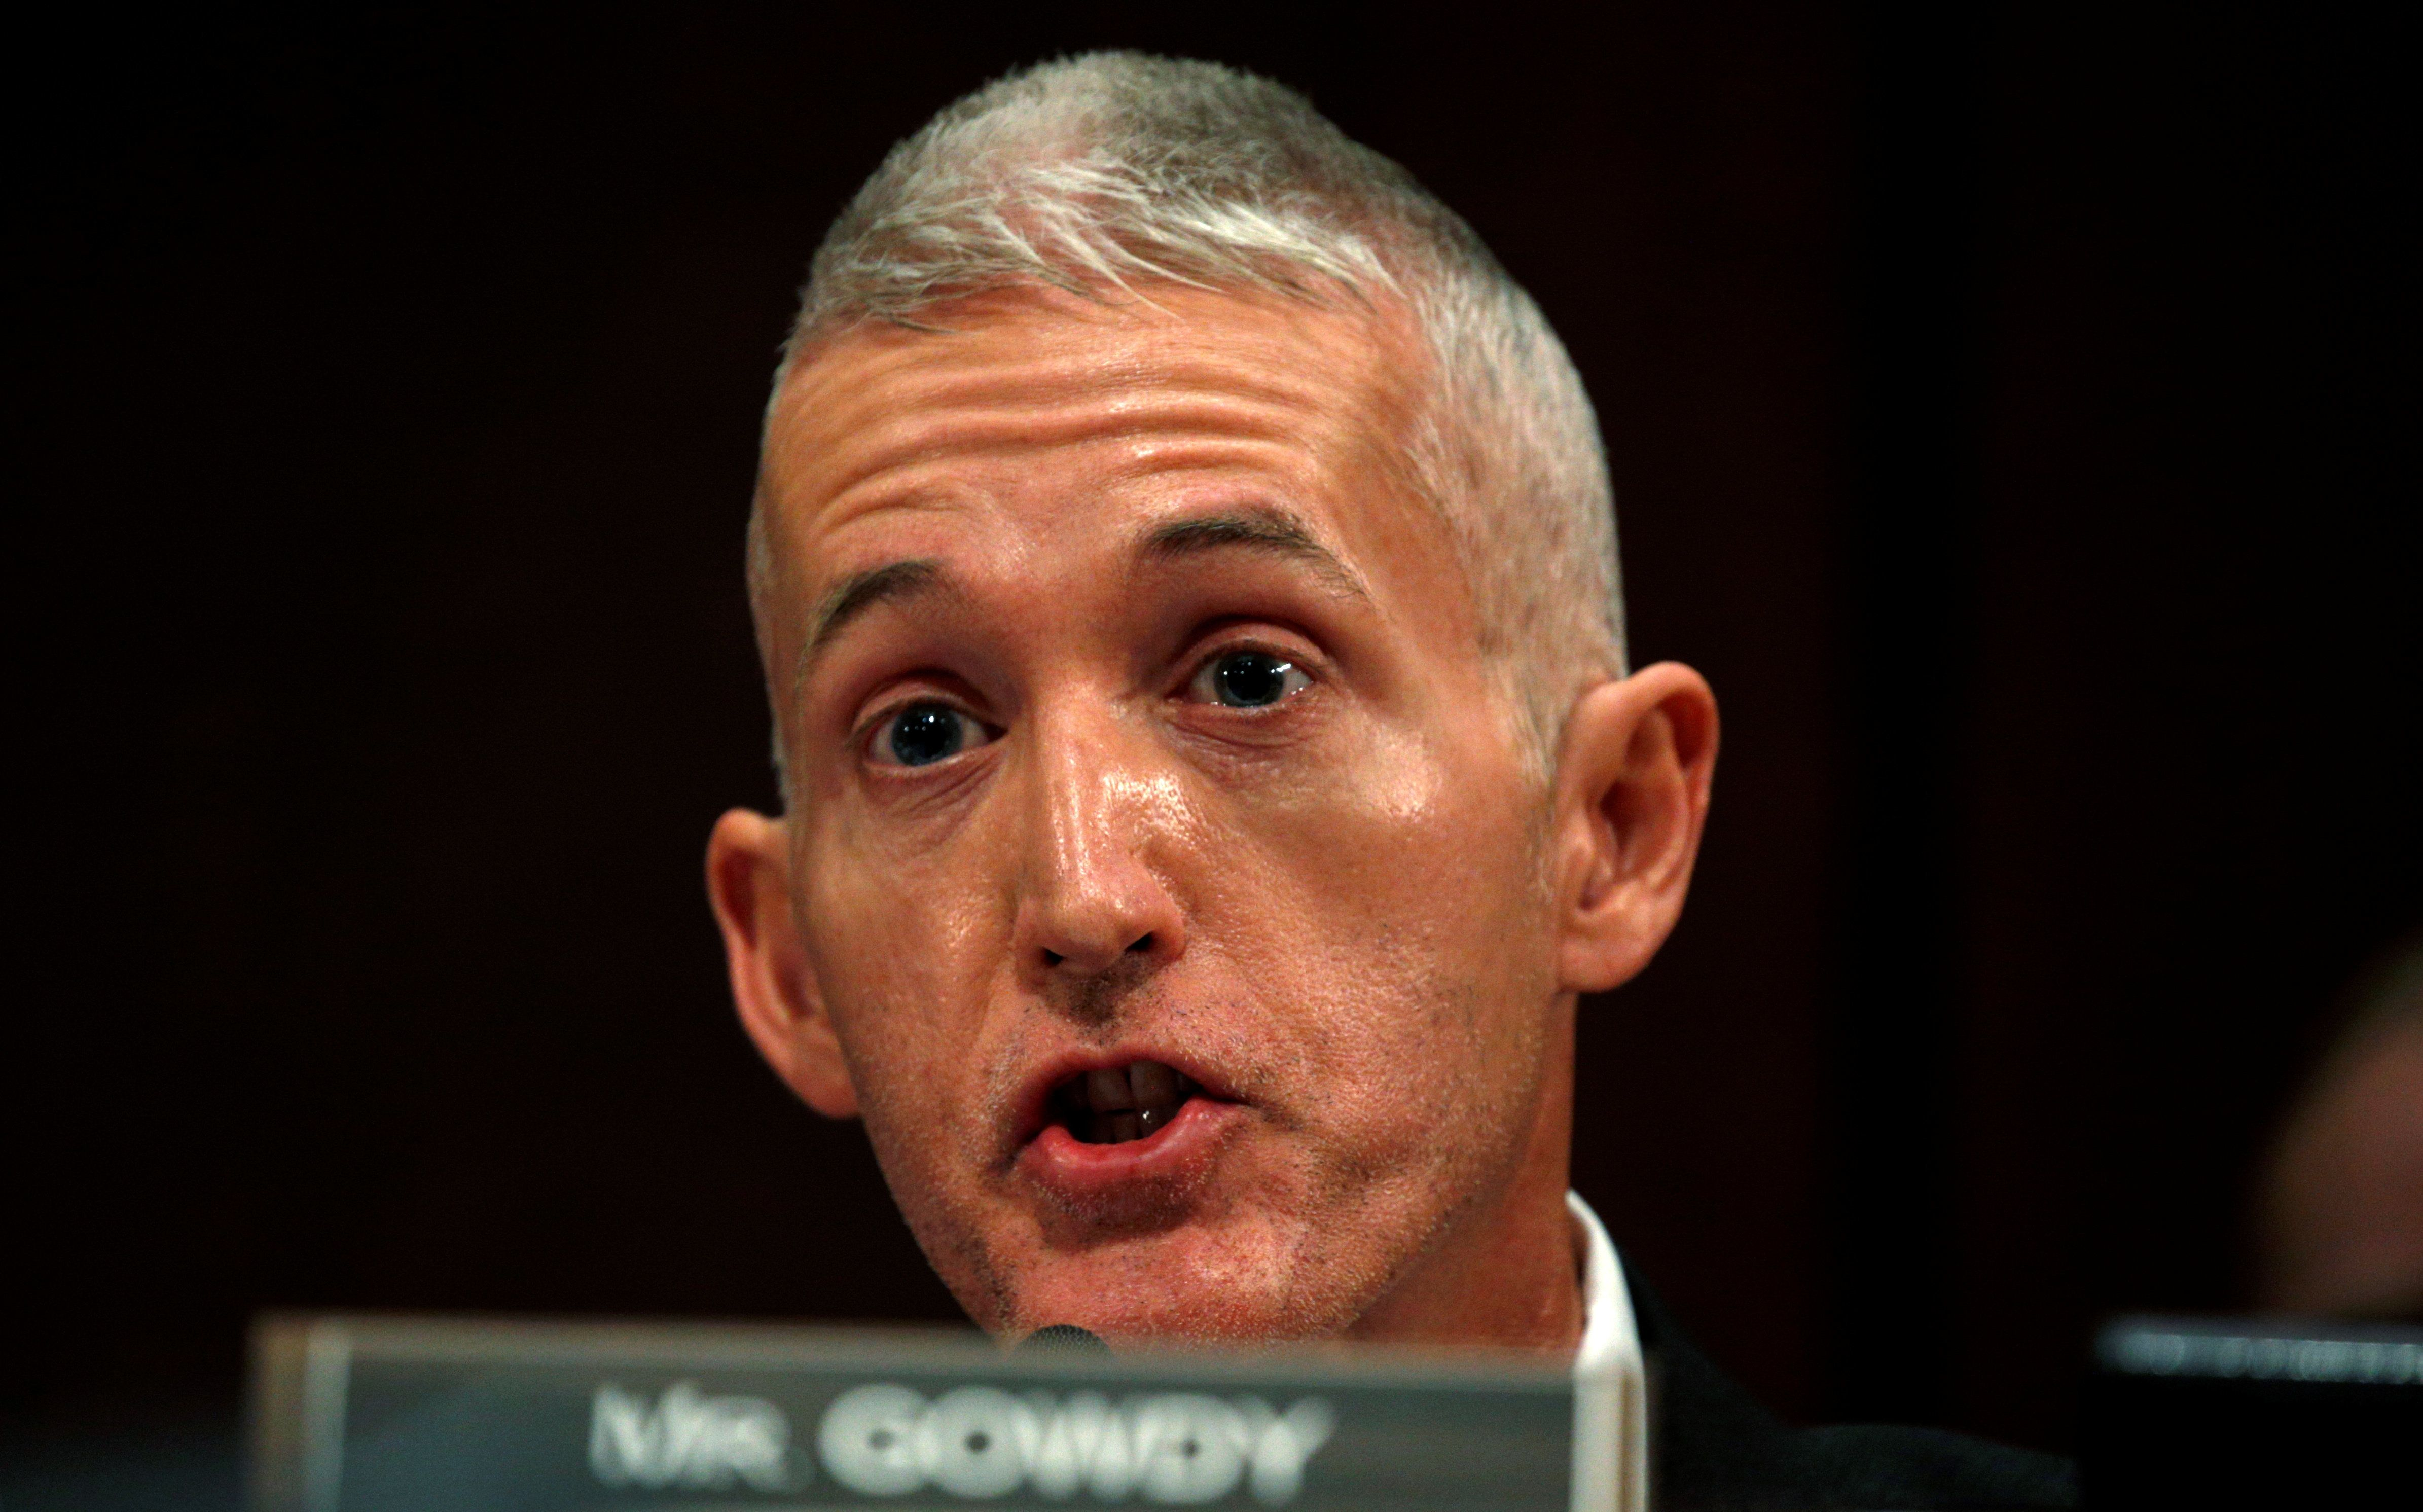 House oversight committee Chairman Trey Gowdy threatened to hold FBI and DOJ officials in contempt of Congress.